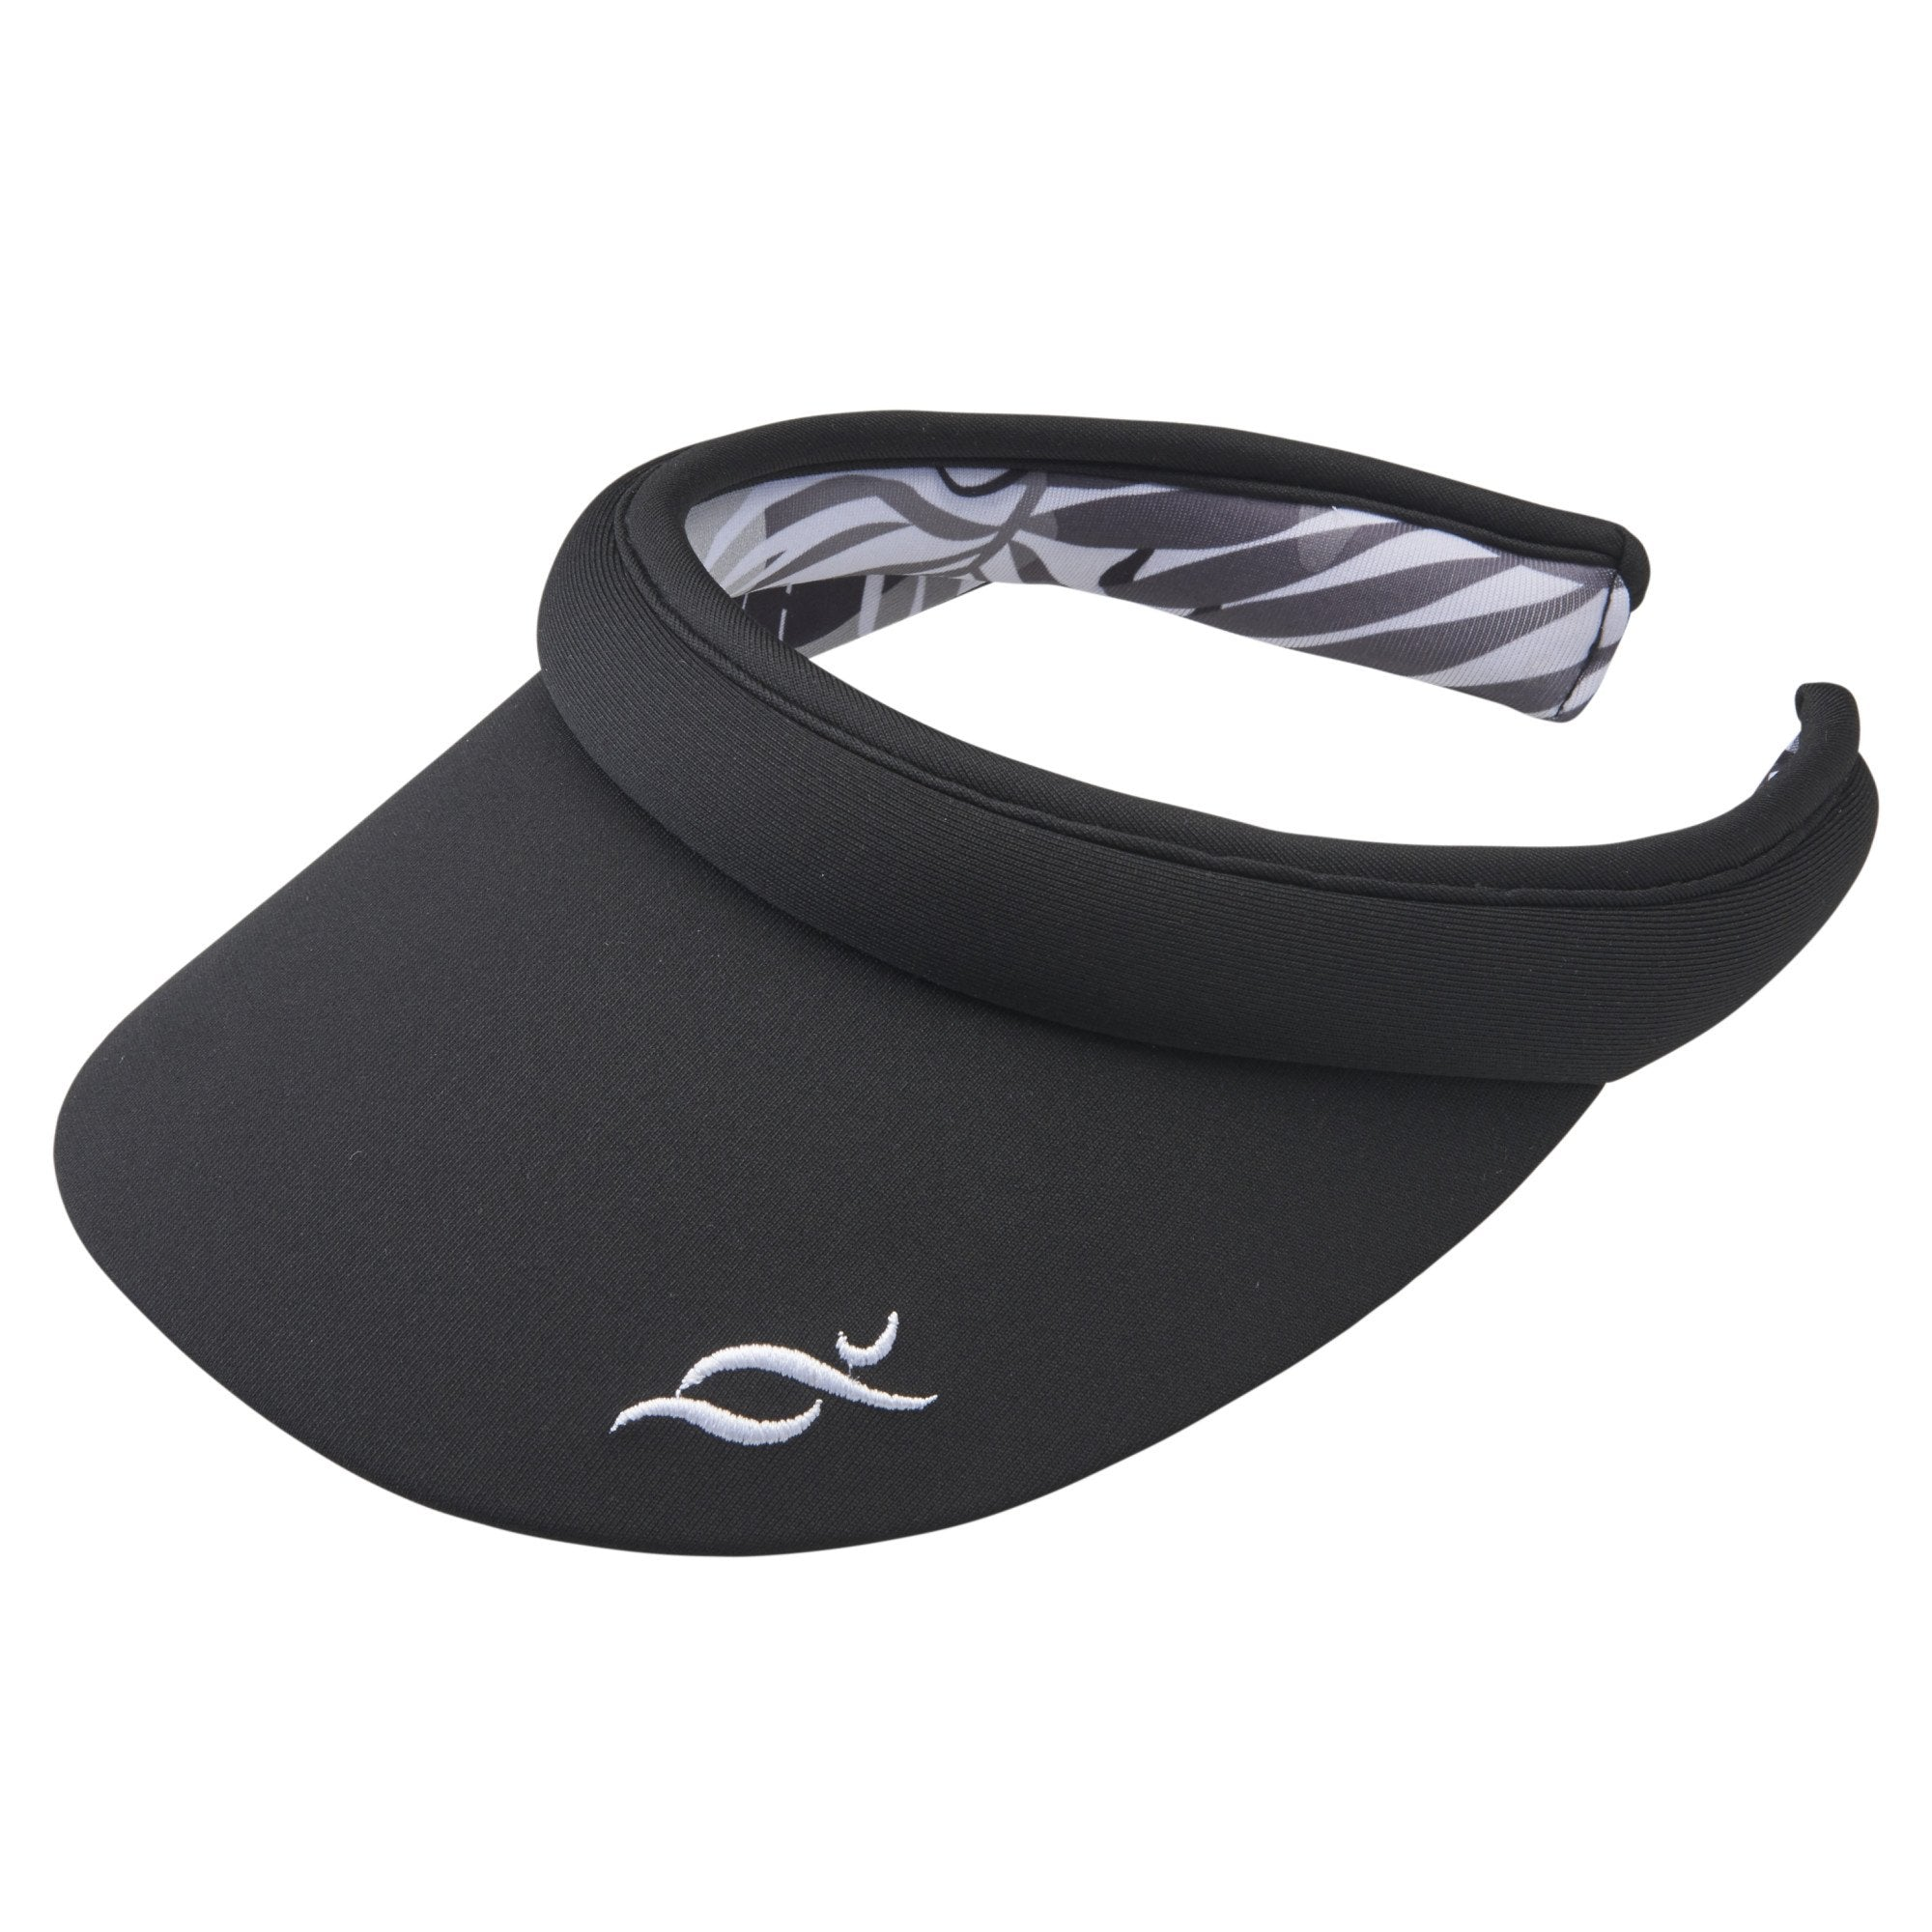 Nancy Lopez Tropic Visor Black Multi